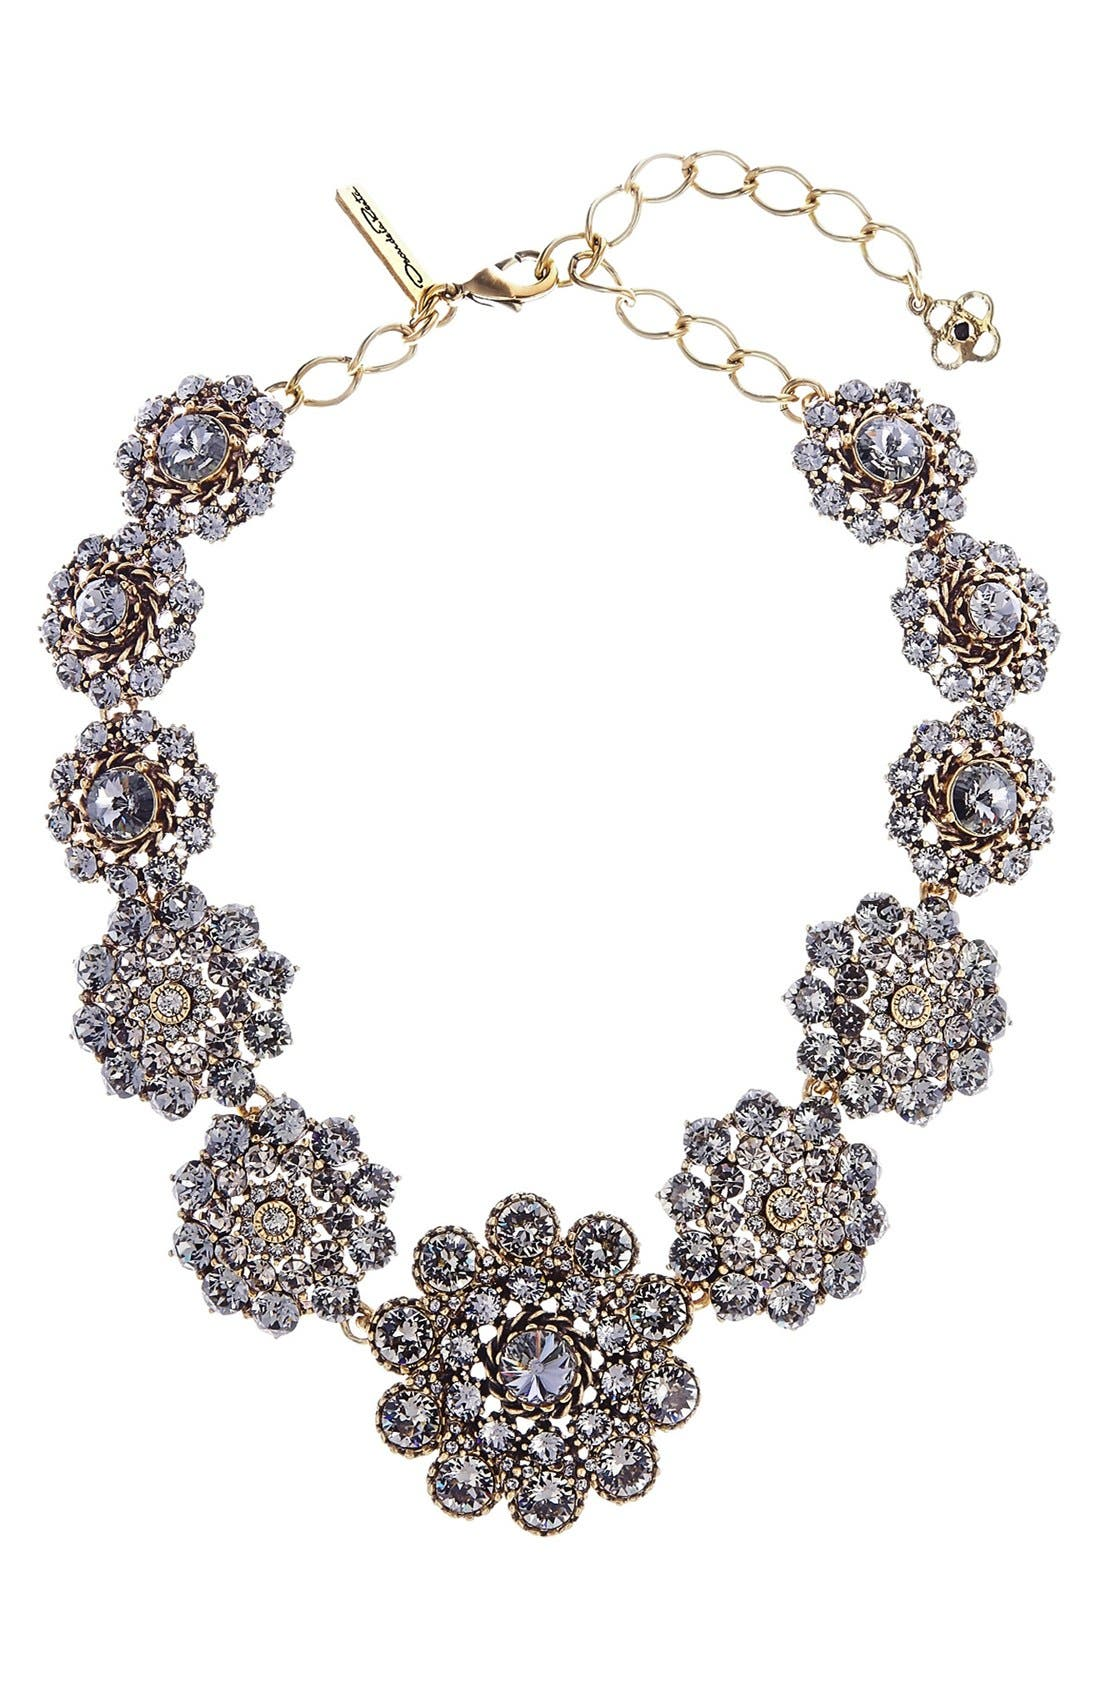 Alternate Image 1 Selected - Oscar de la Renta Swarovski Crystal Collar Necklace